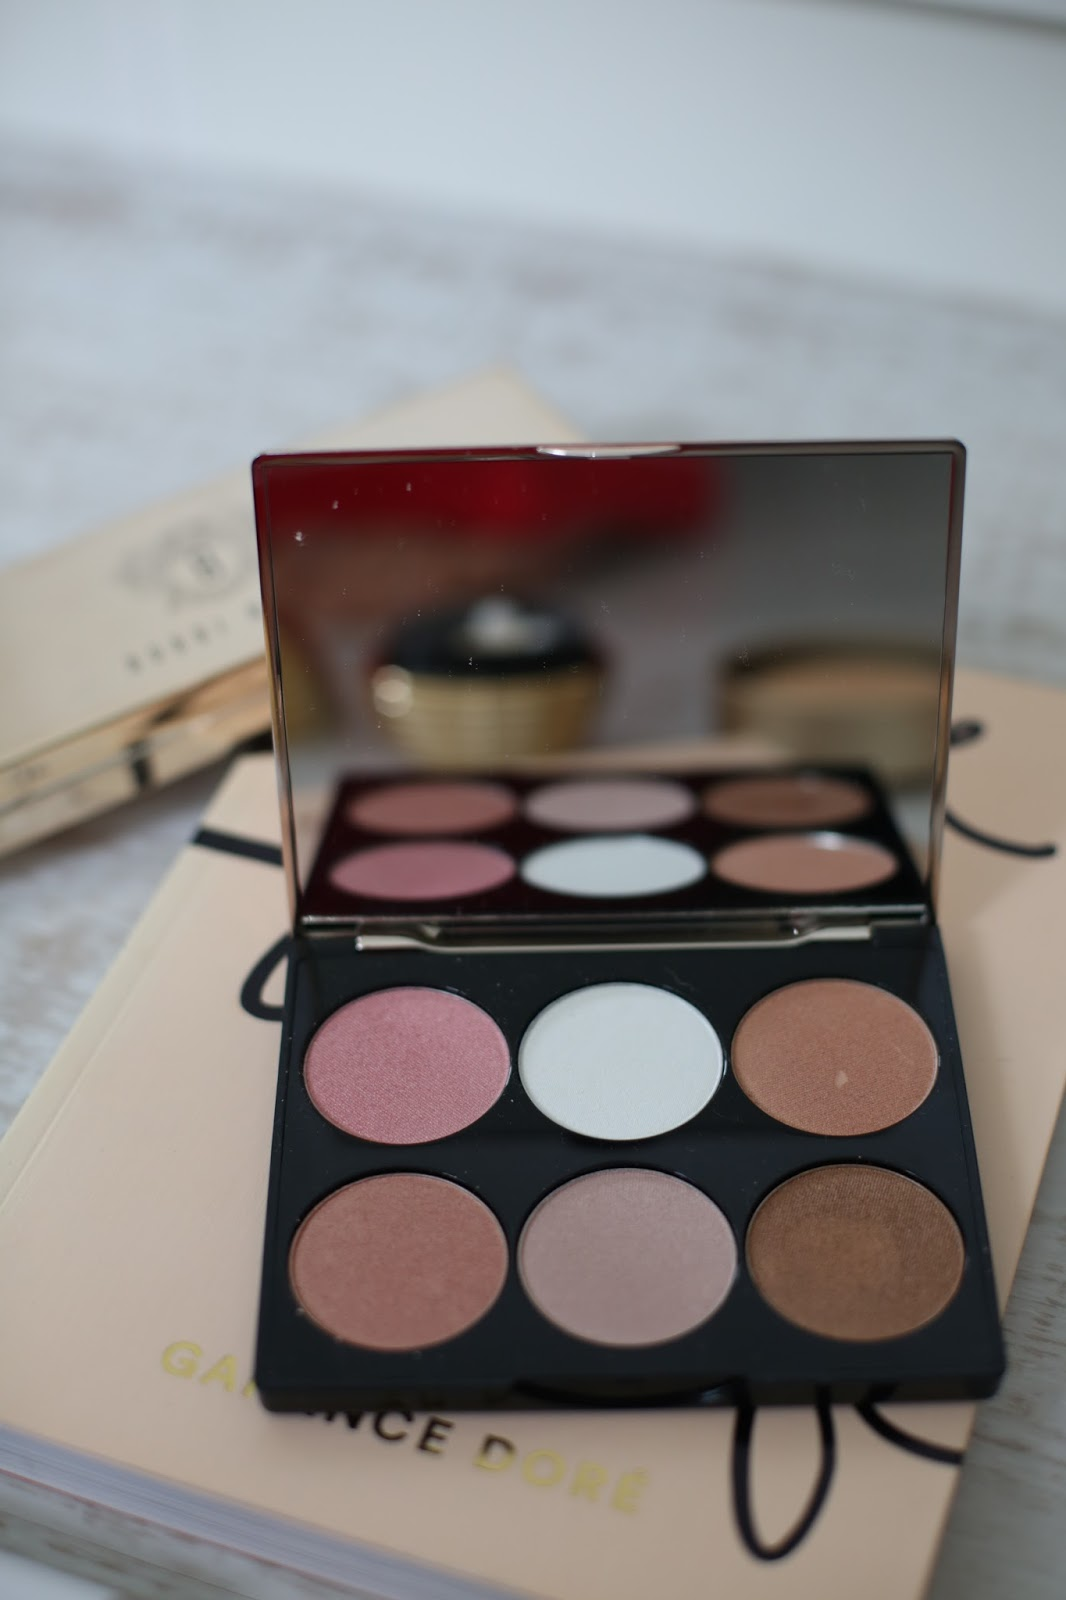 Cover FX Perfect highlight palette